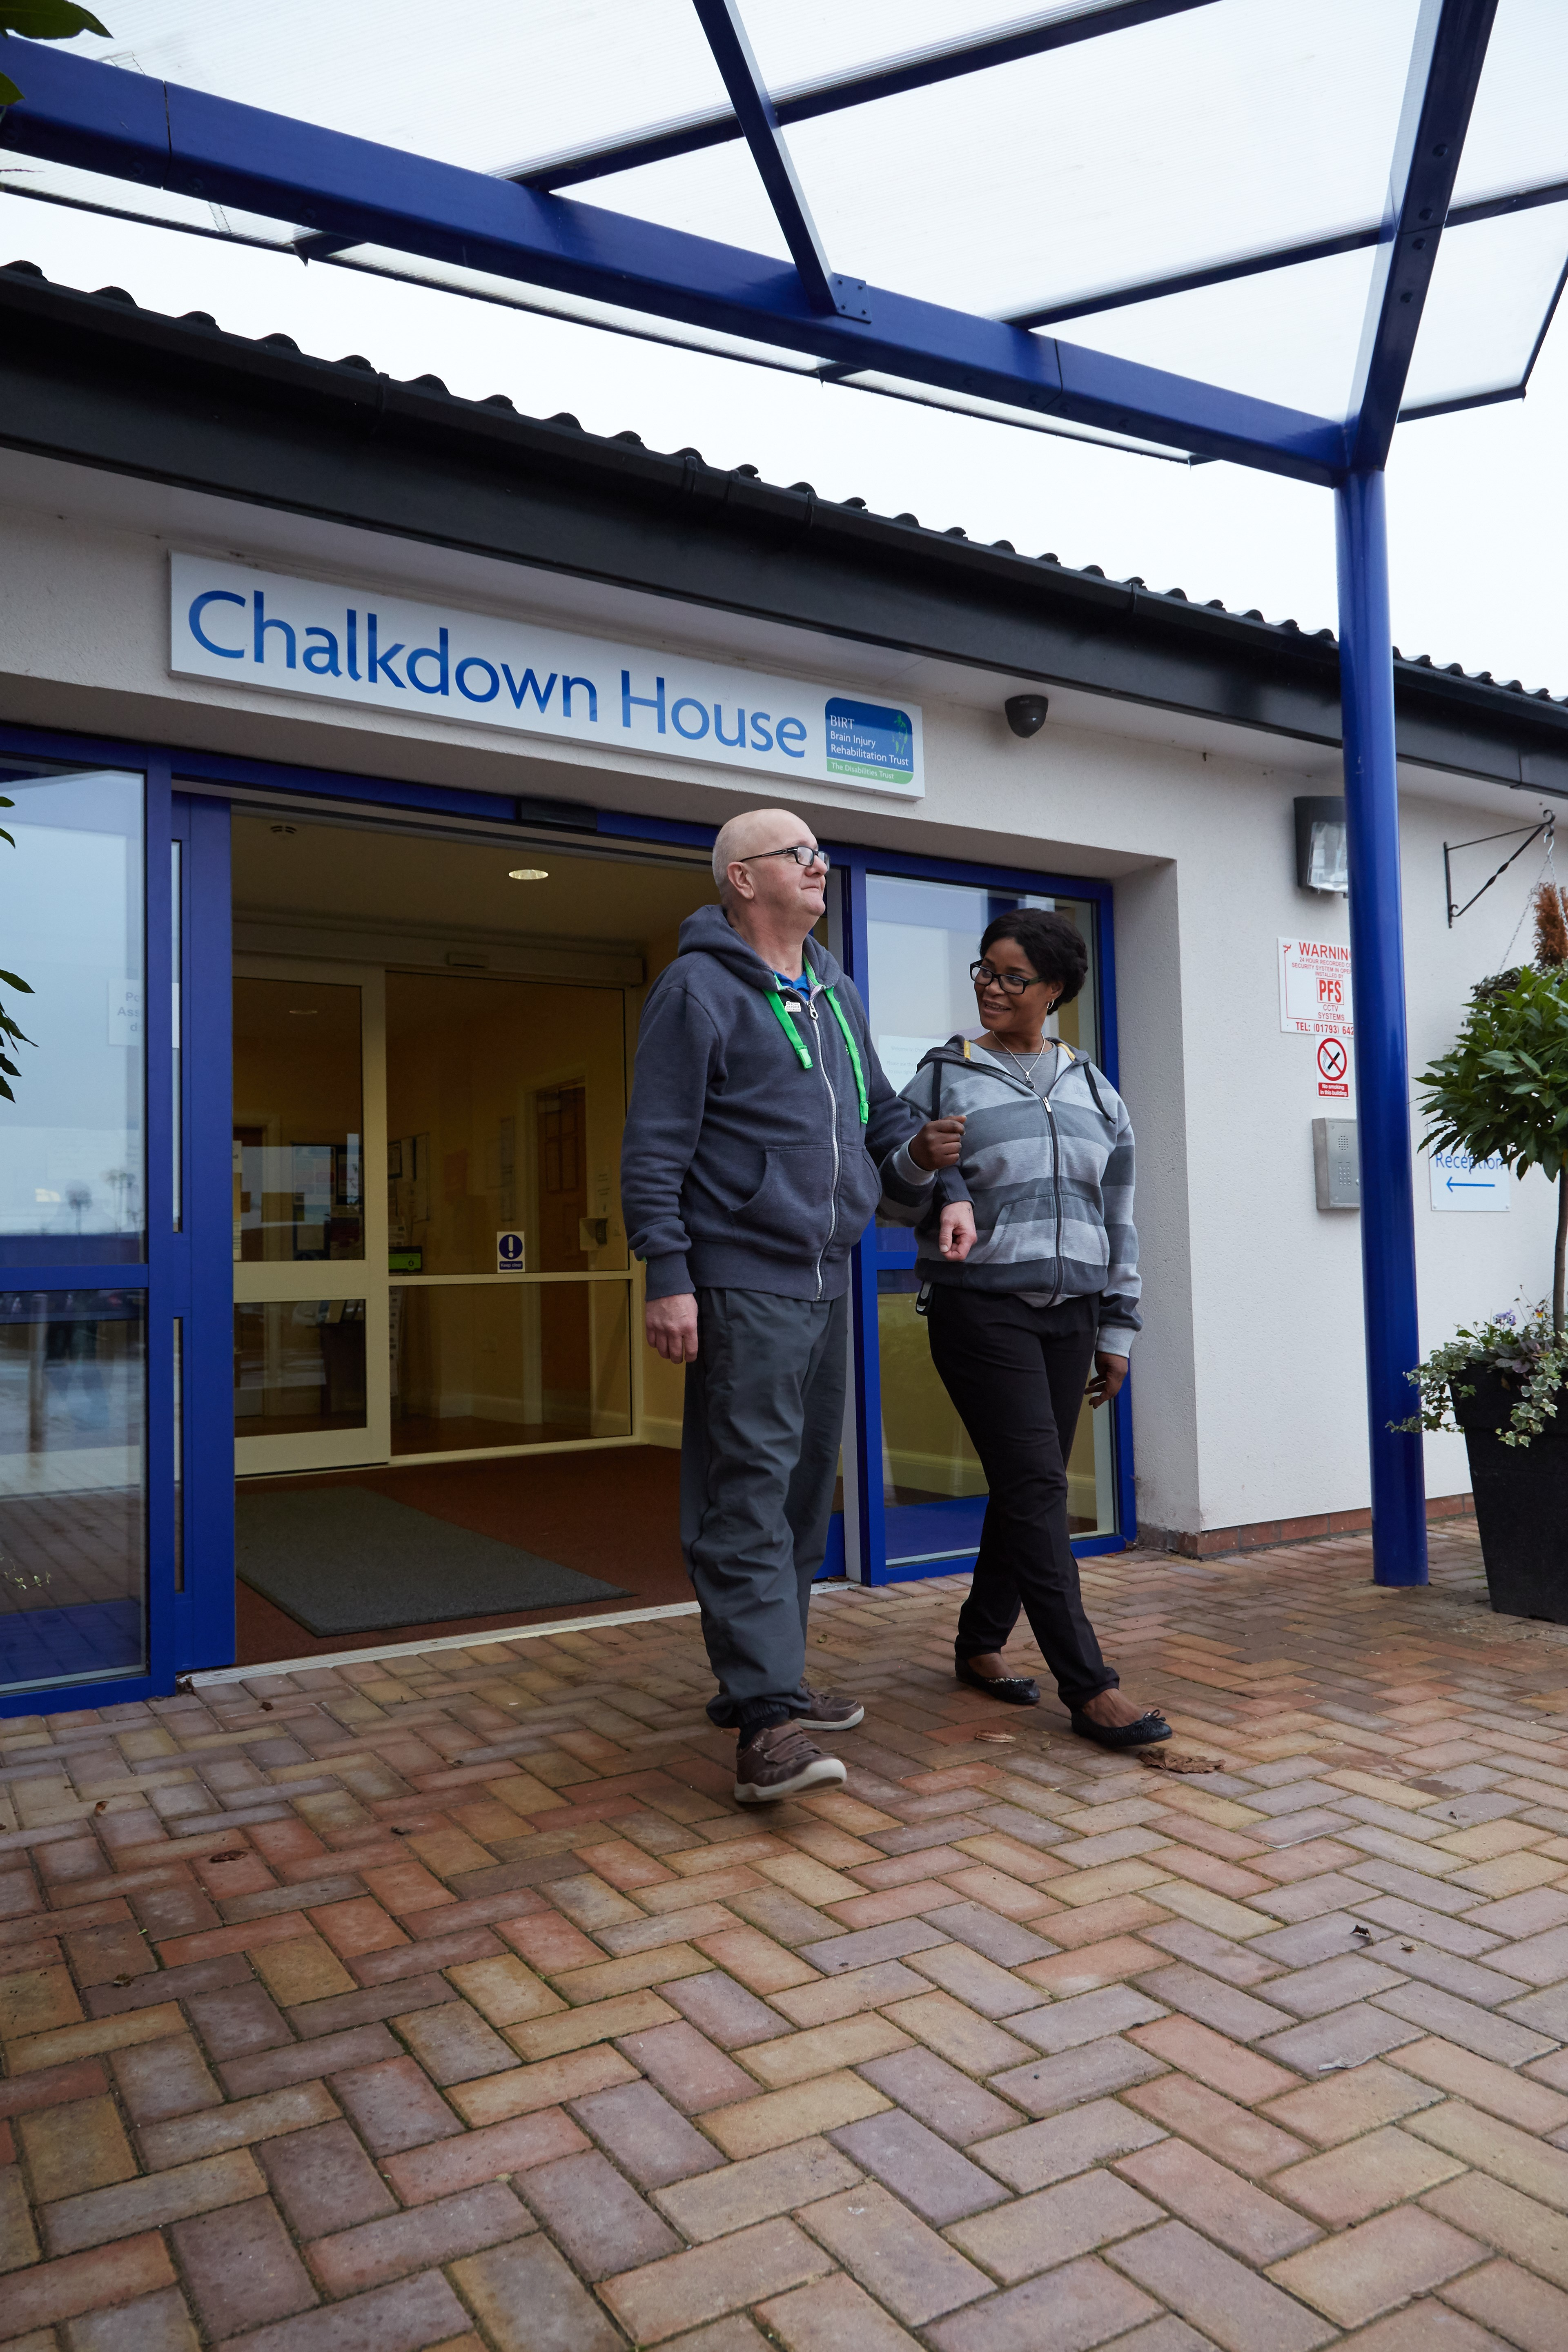 service user standing outside Chalkdown House with support worker